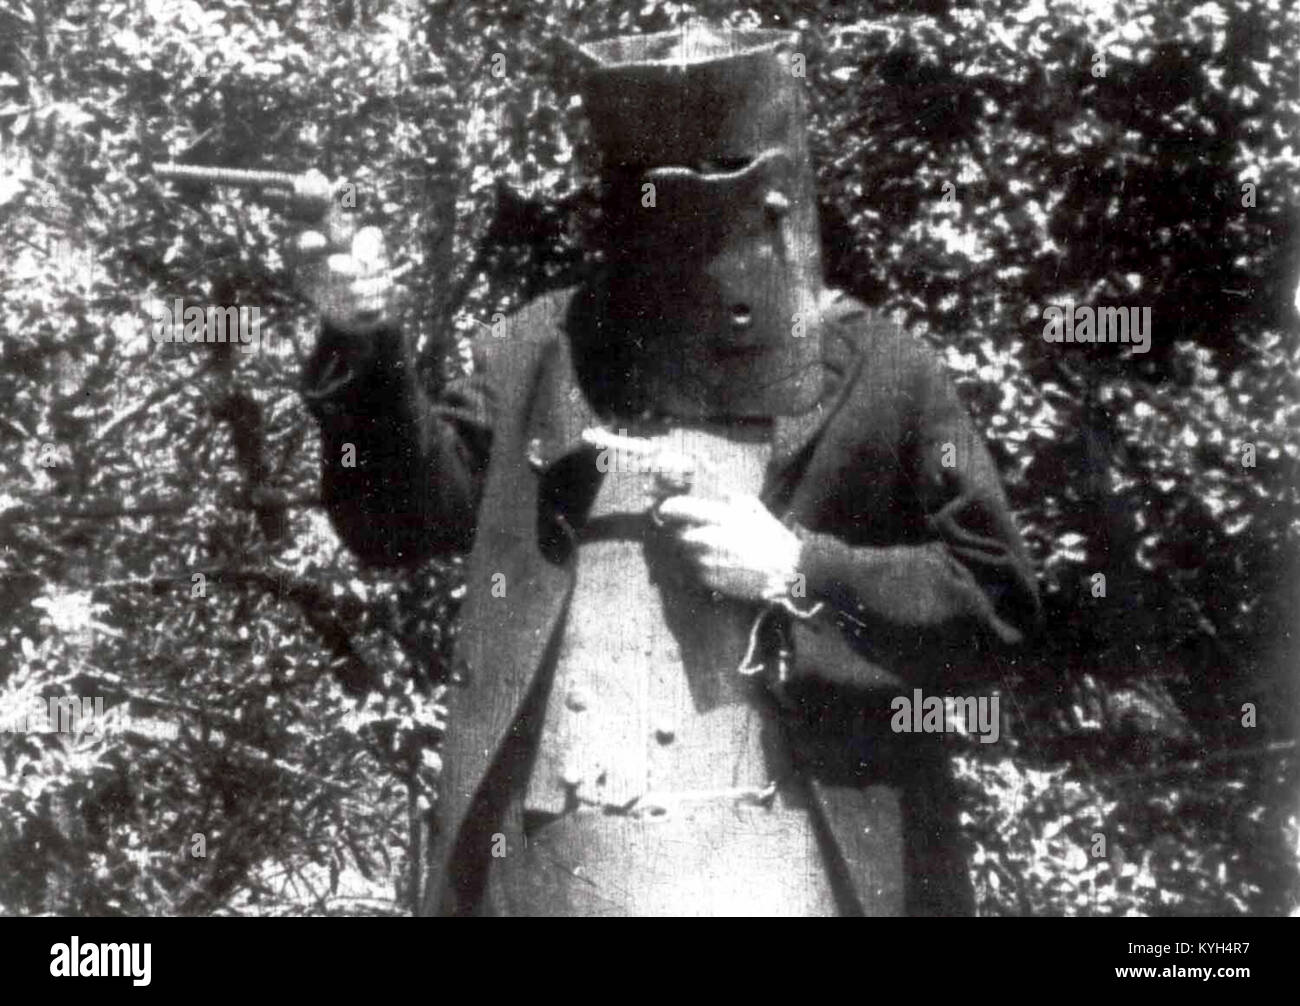 Depiction of Edward 'Ned' Kelly by an actor playing Ned Kelly in The Story of the Kelly Gang feature film - Stock Image